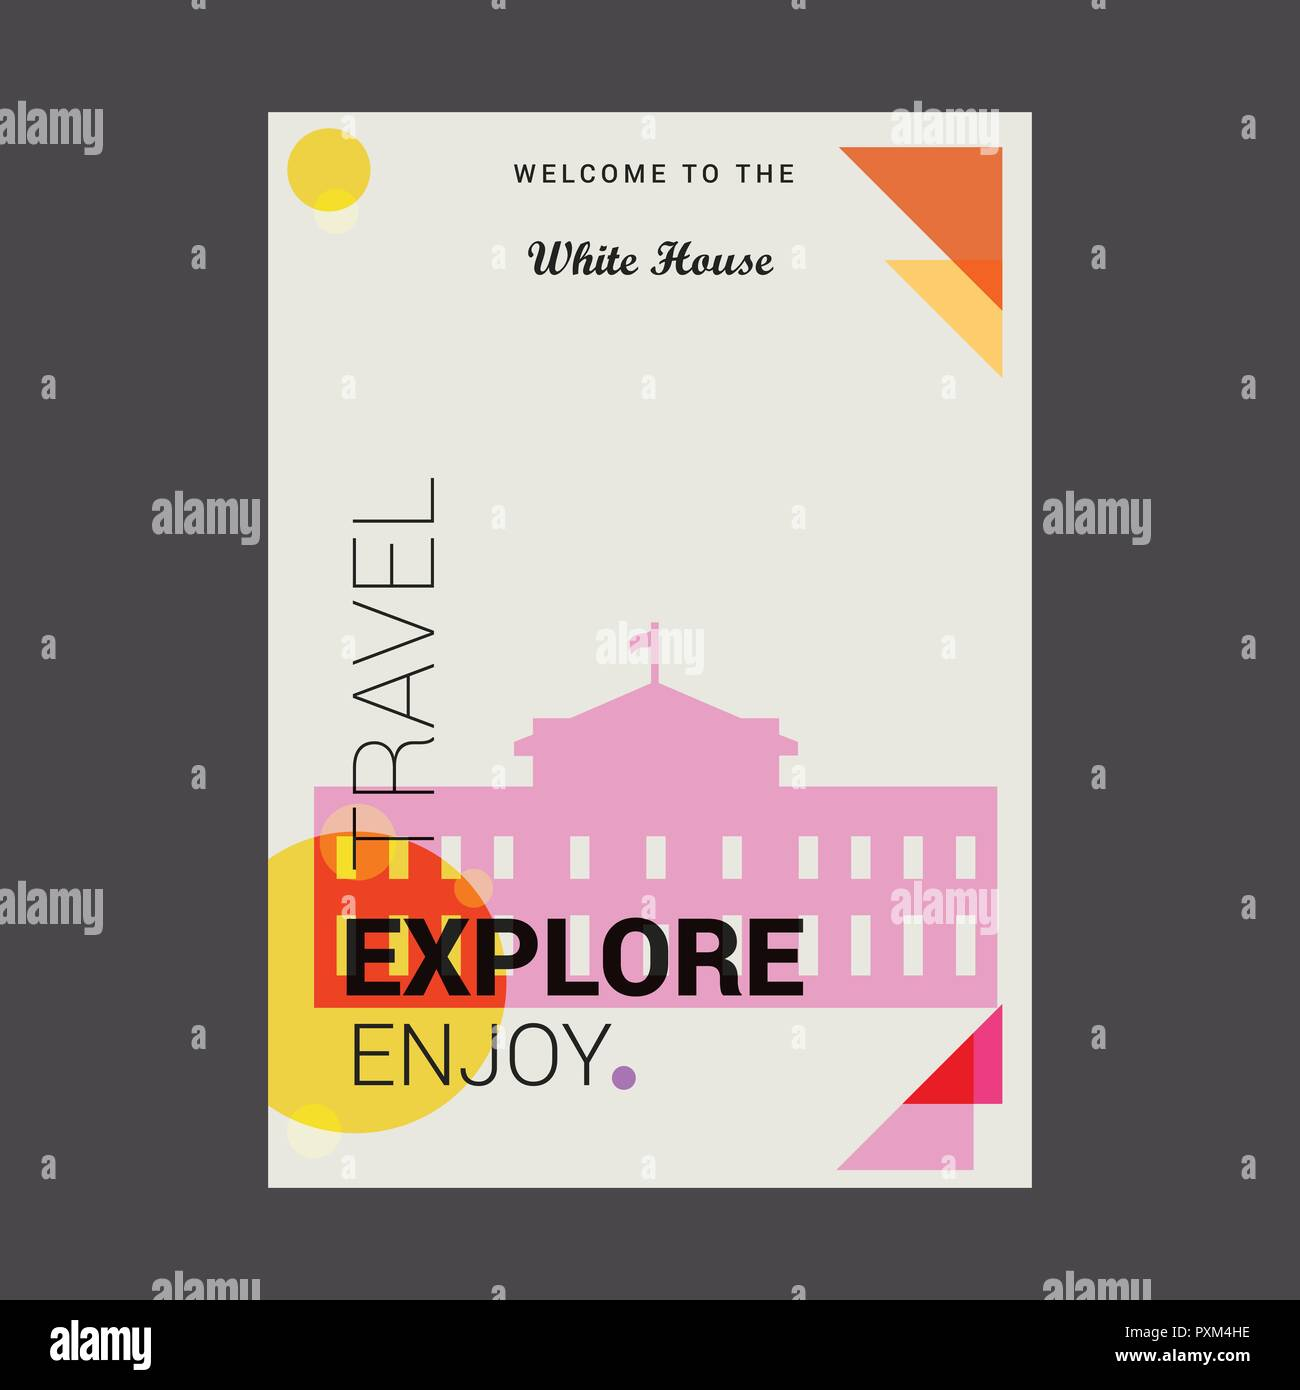 Welcome to The White house Washington, D.C.  U.S.A Explore, Travel Enjoy Poster Template - Stock Vector